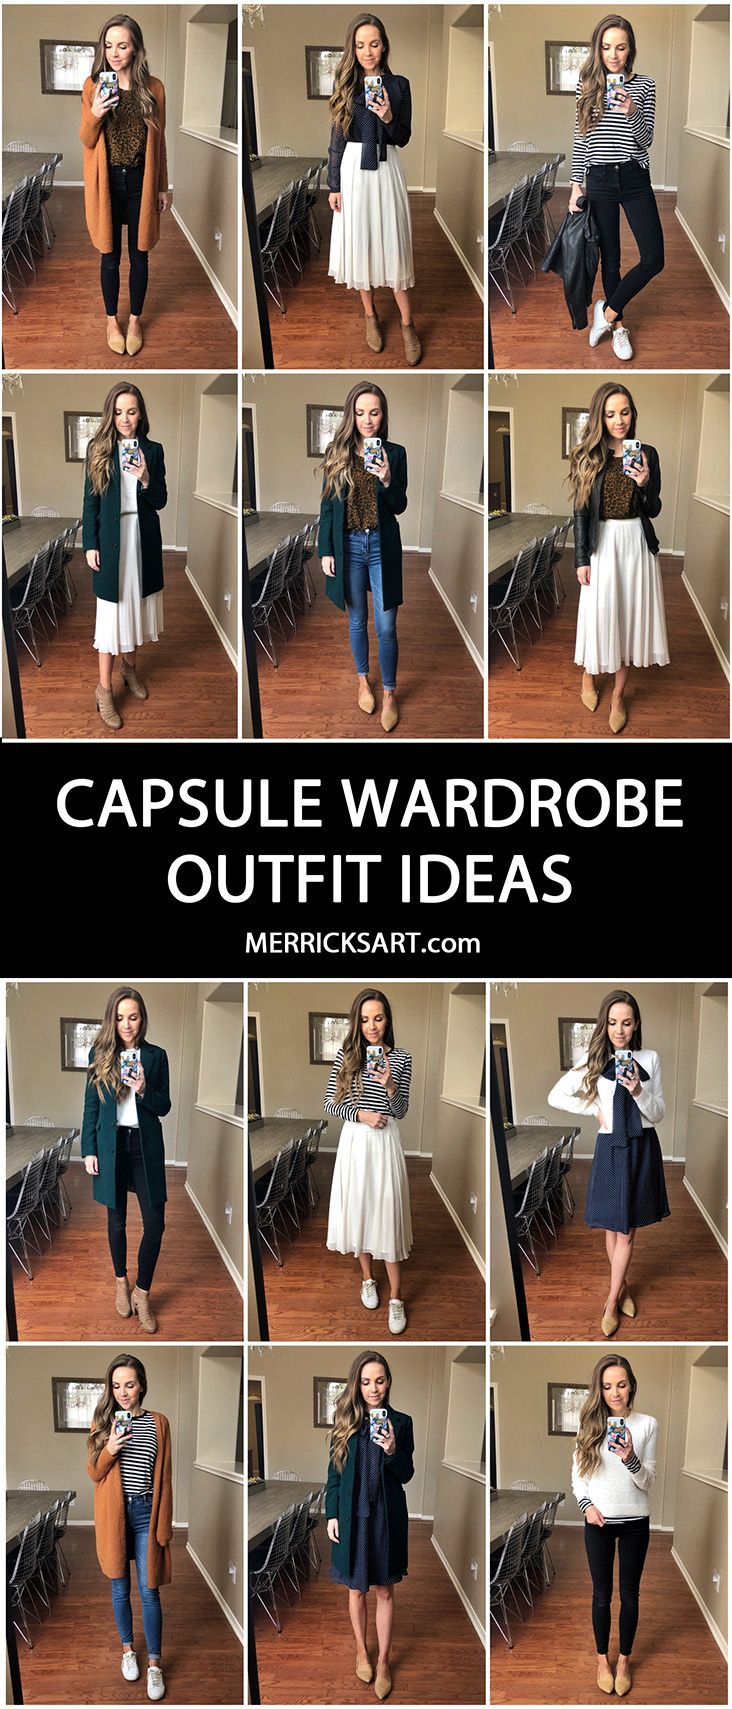 How to Build a Capsule Wardrobe (13 Pieces, Dozens of Outfits) #travelwardrobesummer